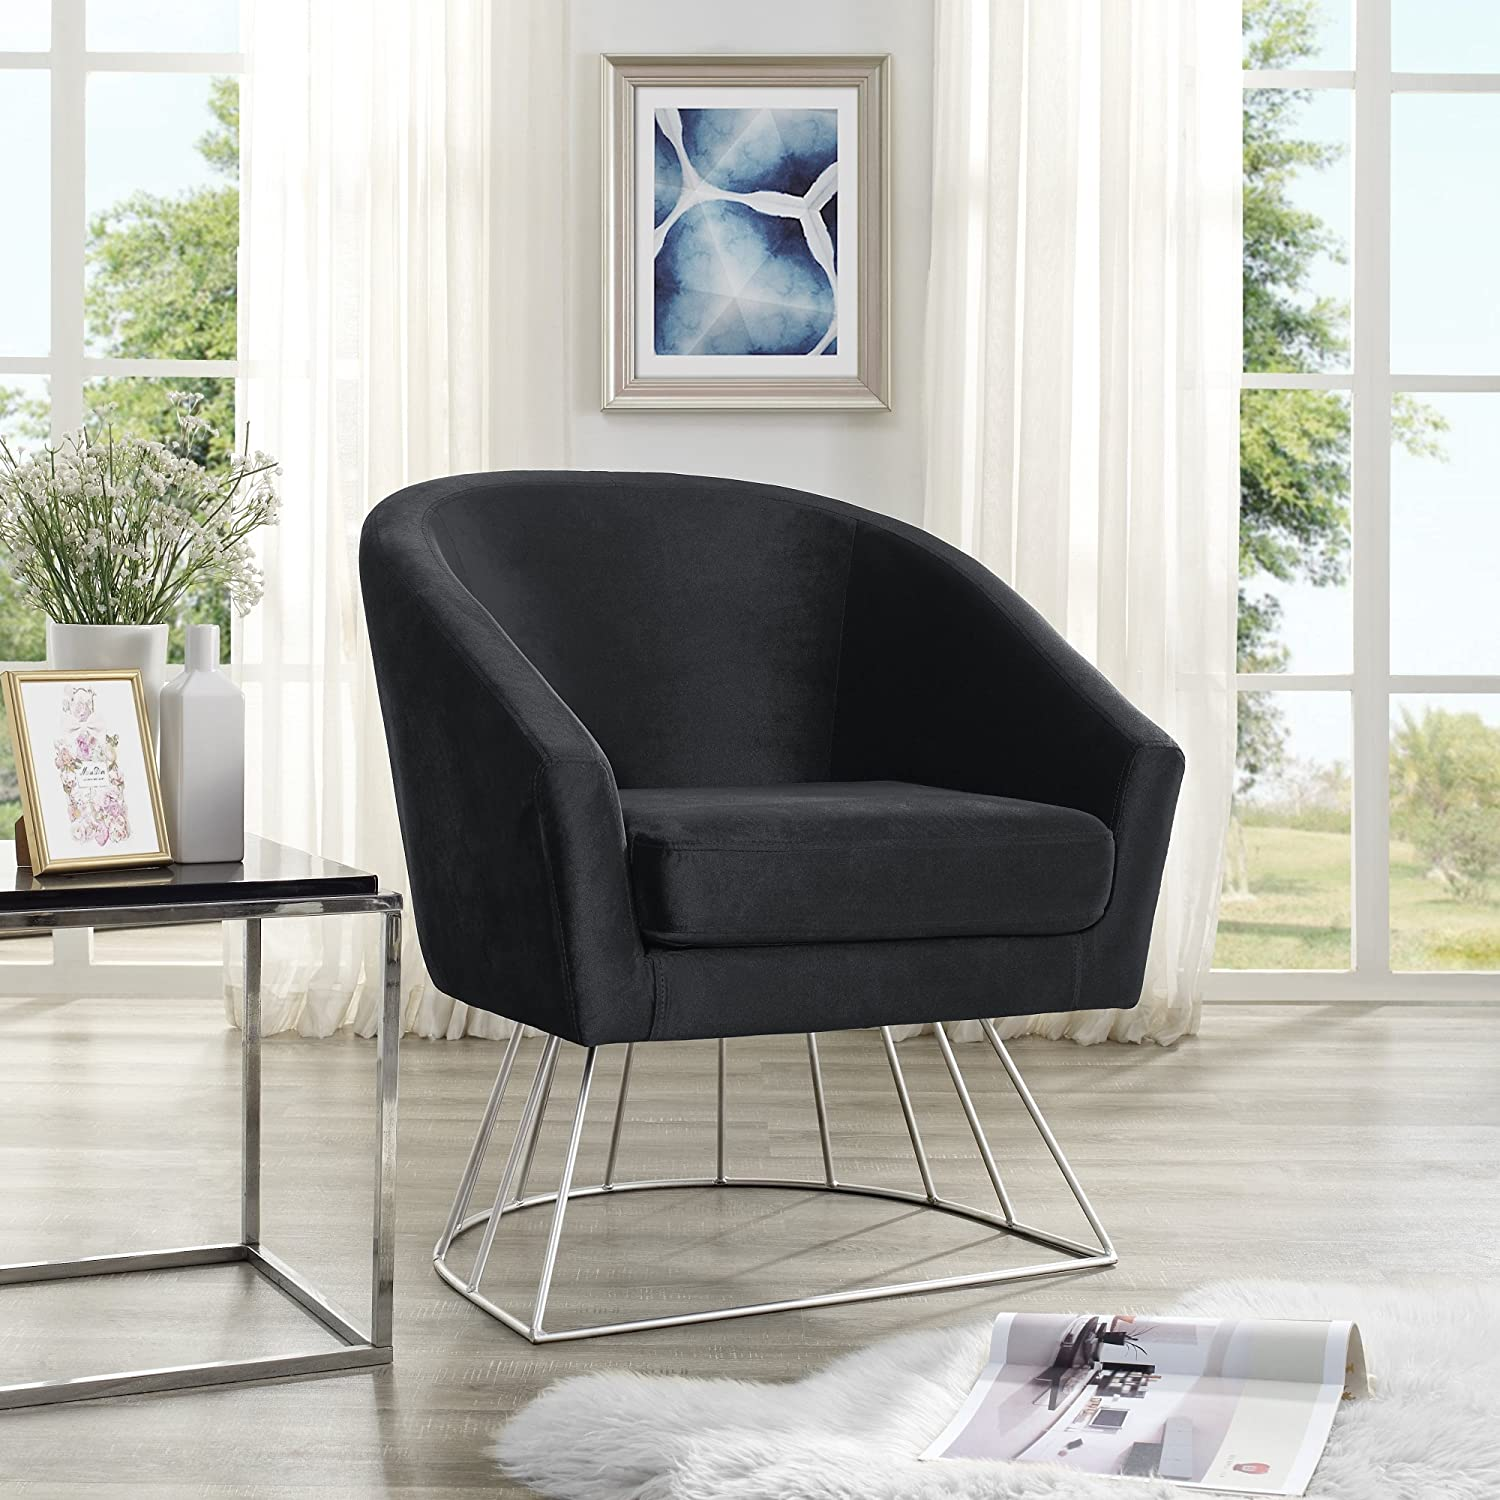 Admirable Amazon Com Adalene Black Velvet Accent Chair Silver Metal Caraccident5 Cool Chair Designs And Ideas Caraccident5Info